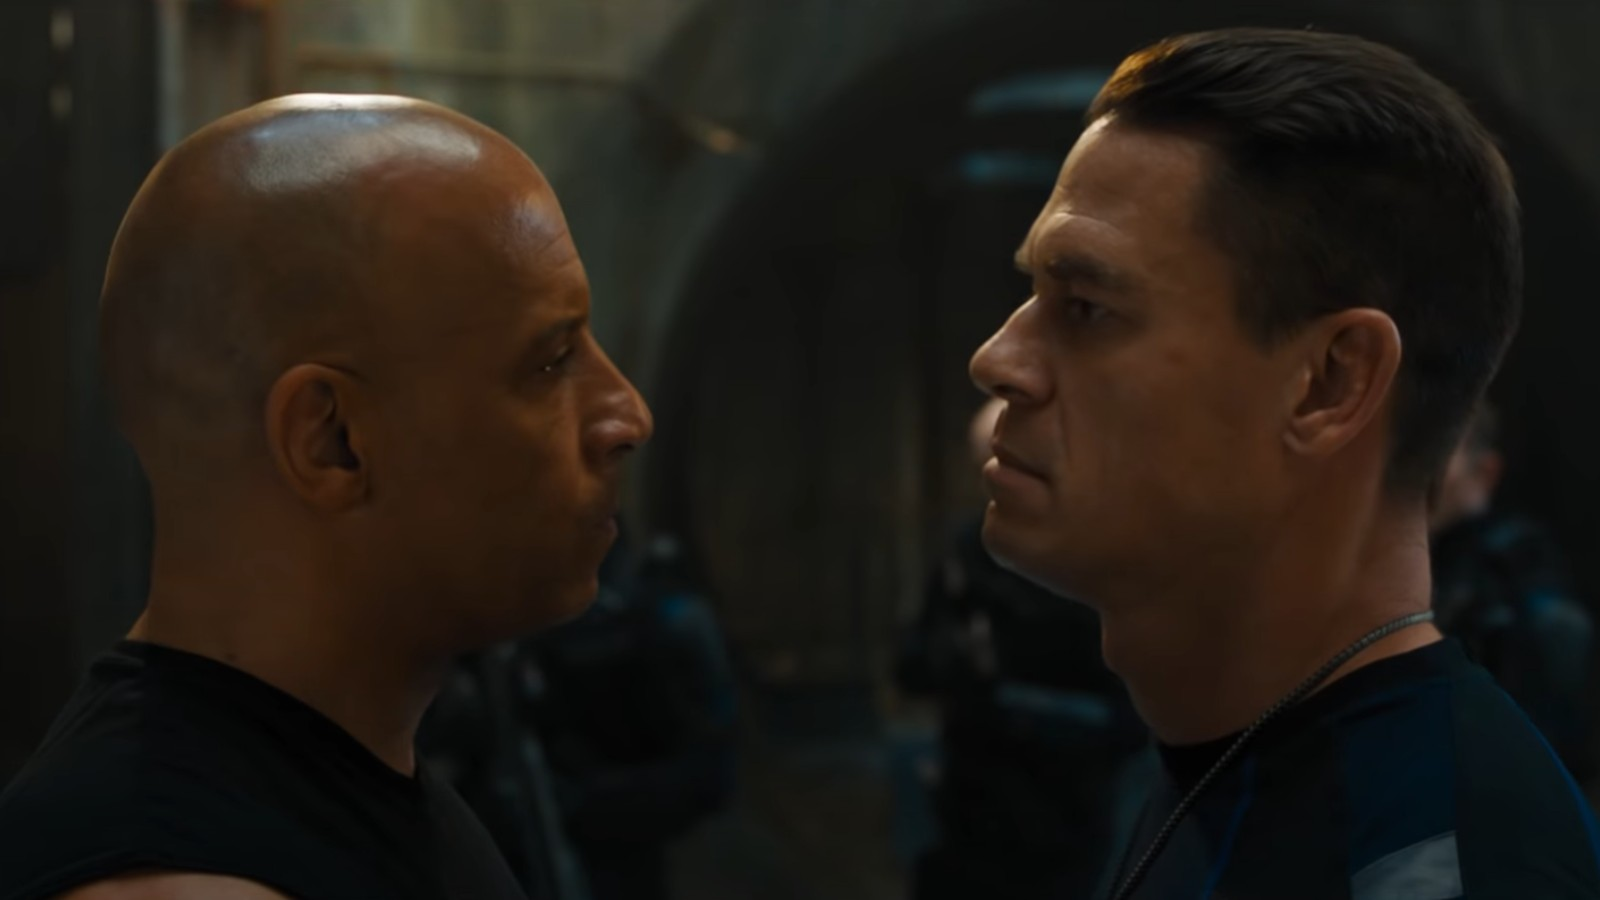 Vin Diesel and John Cena in Fast and Furious 9 F9